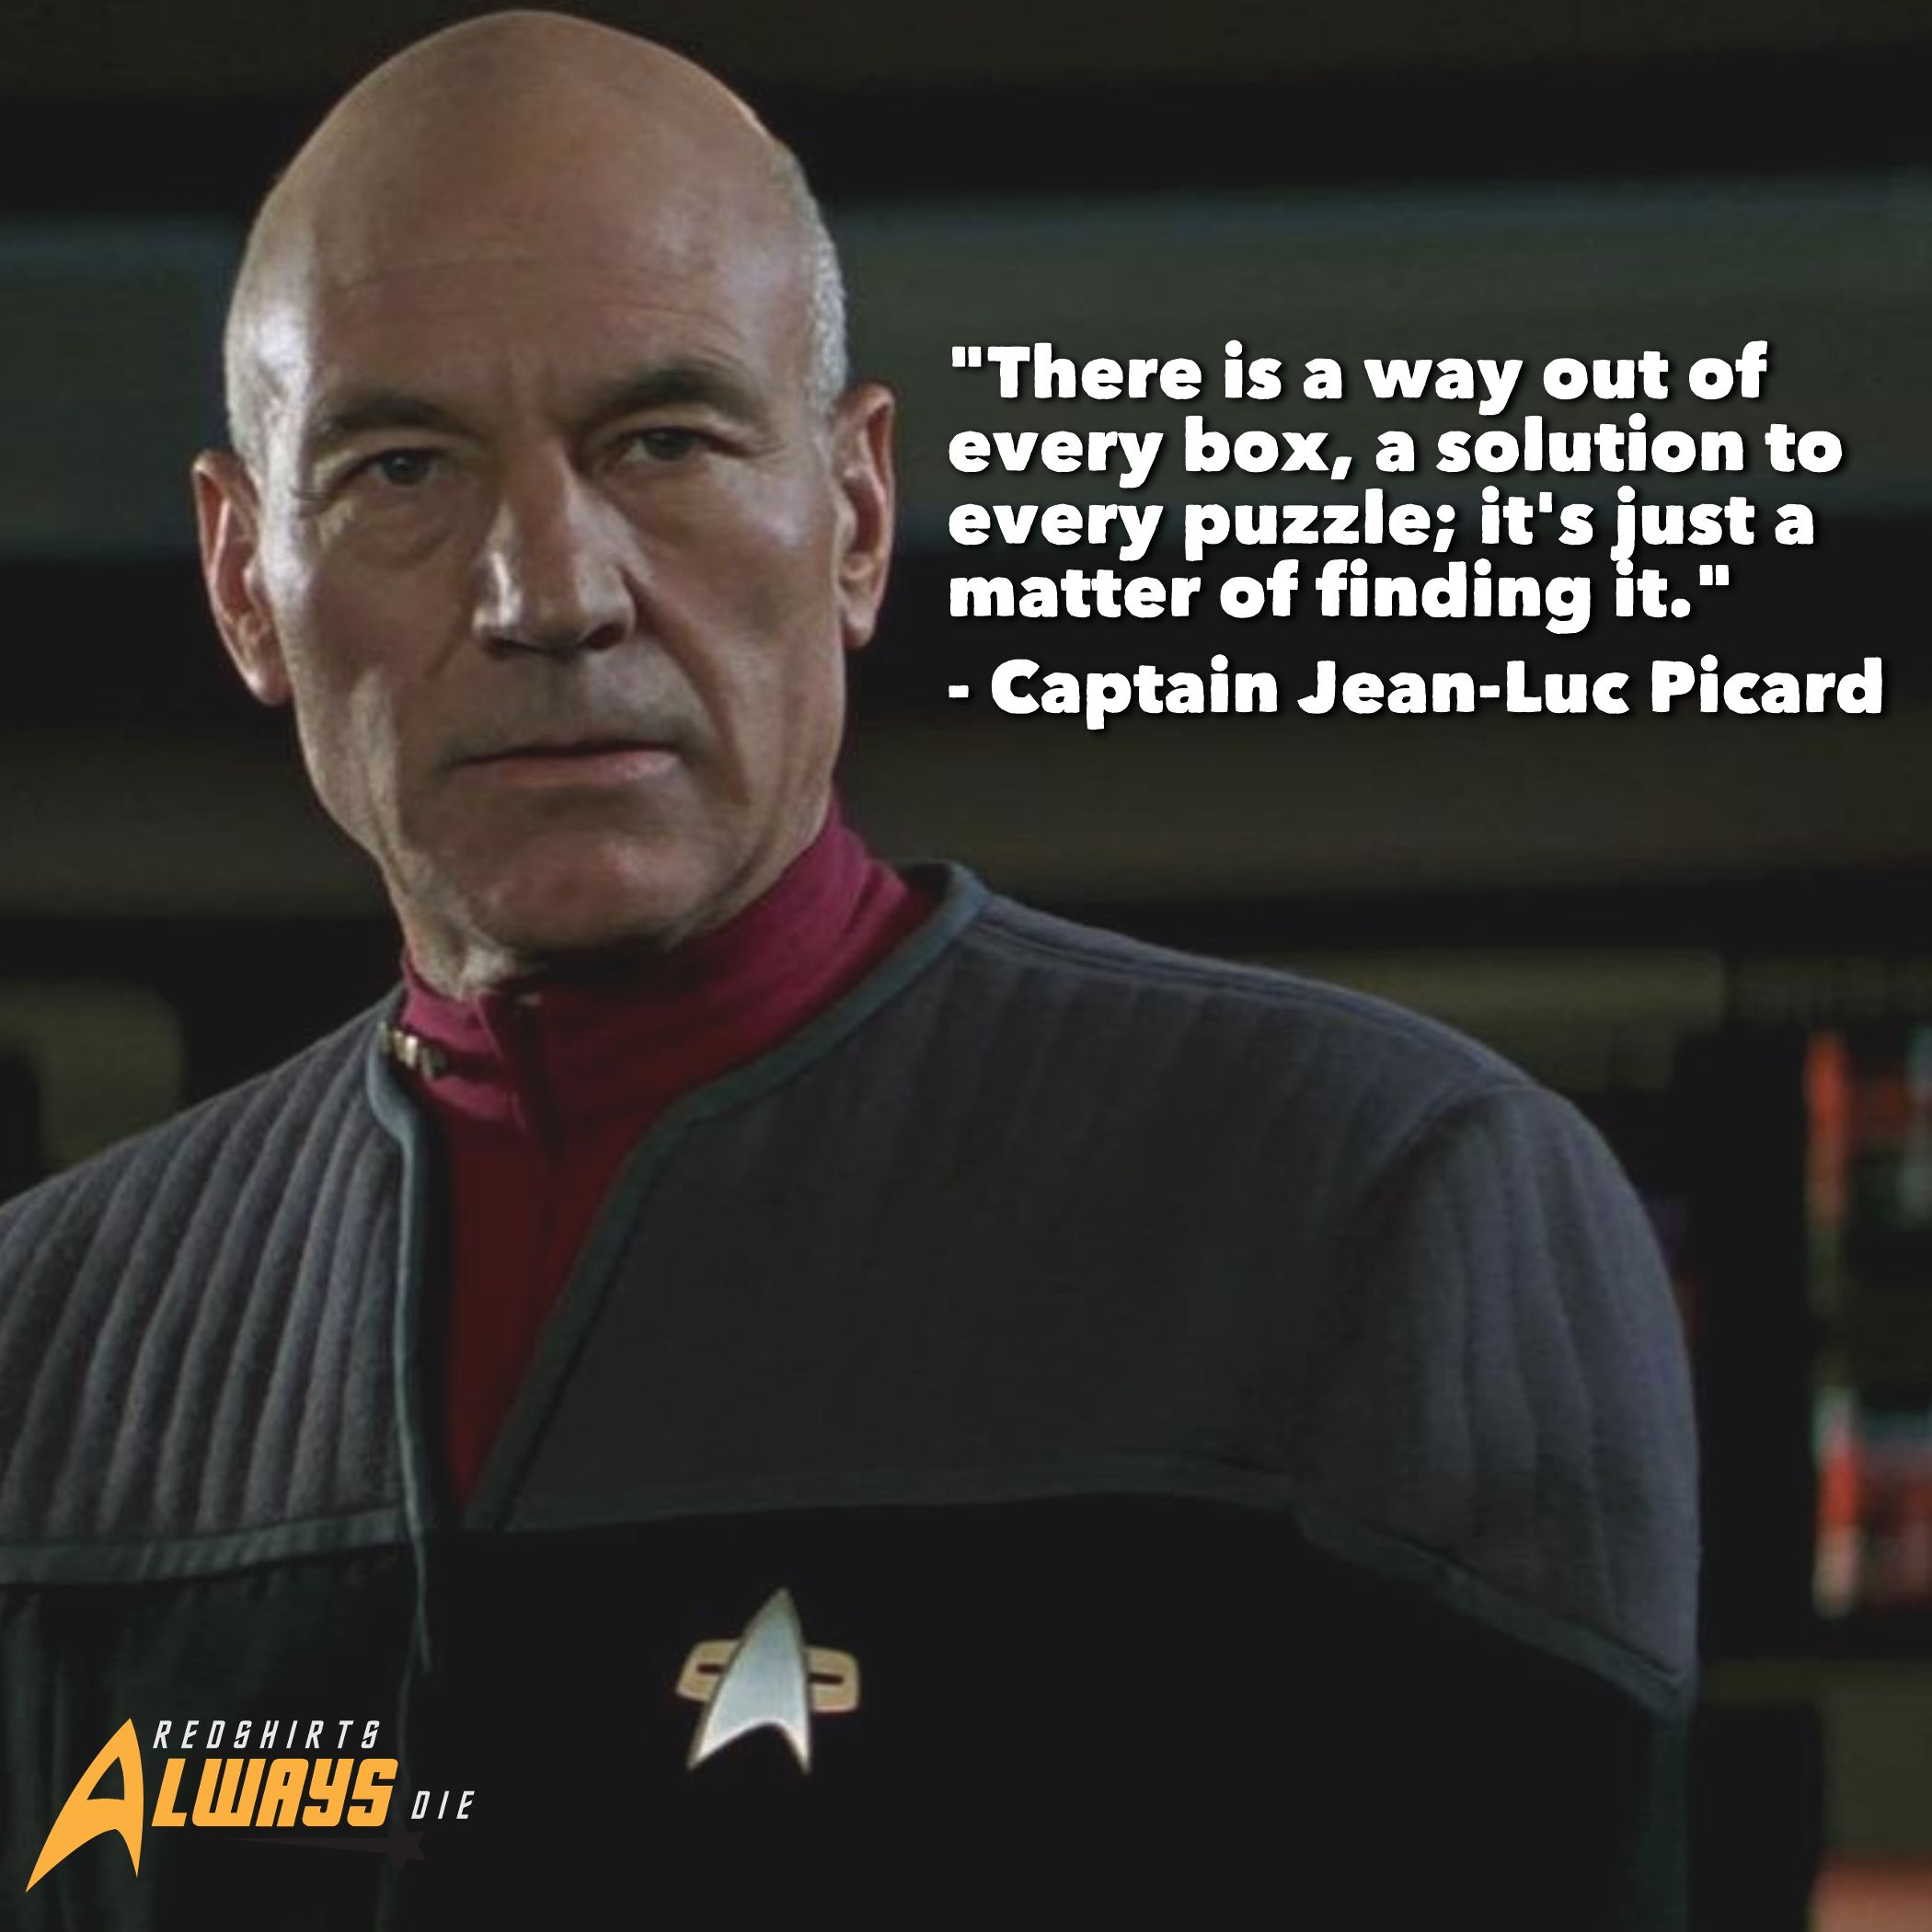 30 Reasons Why Captain Picard is Better than Captain Kirk